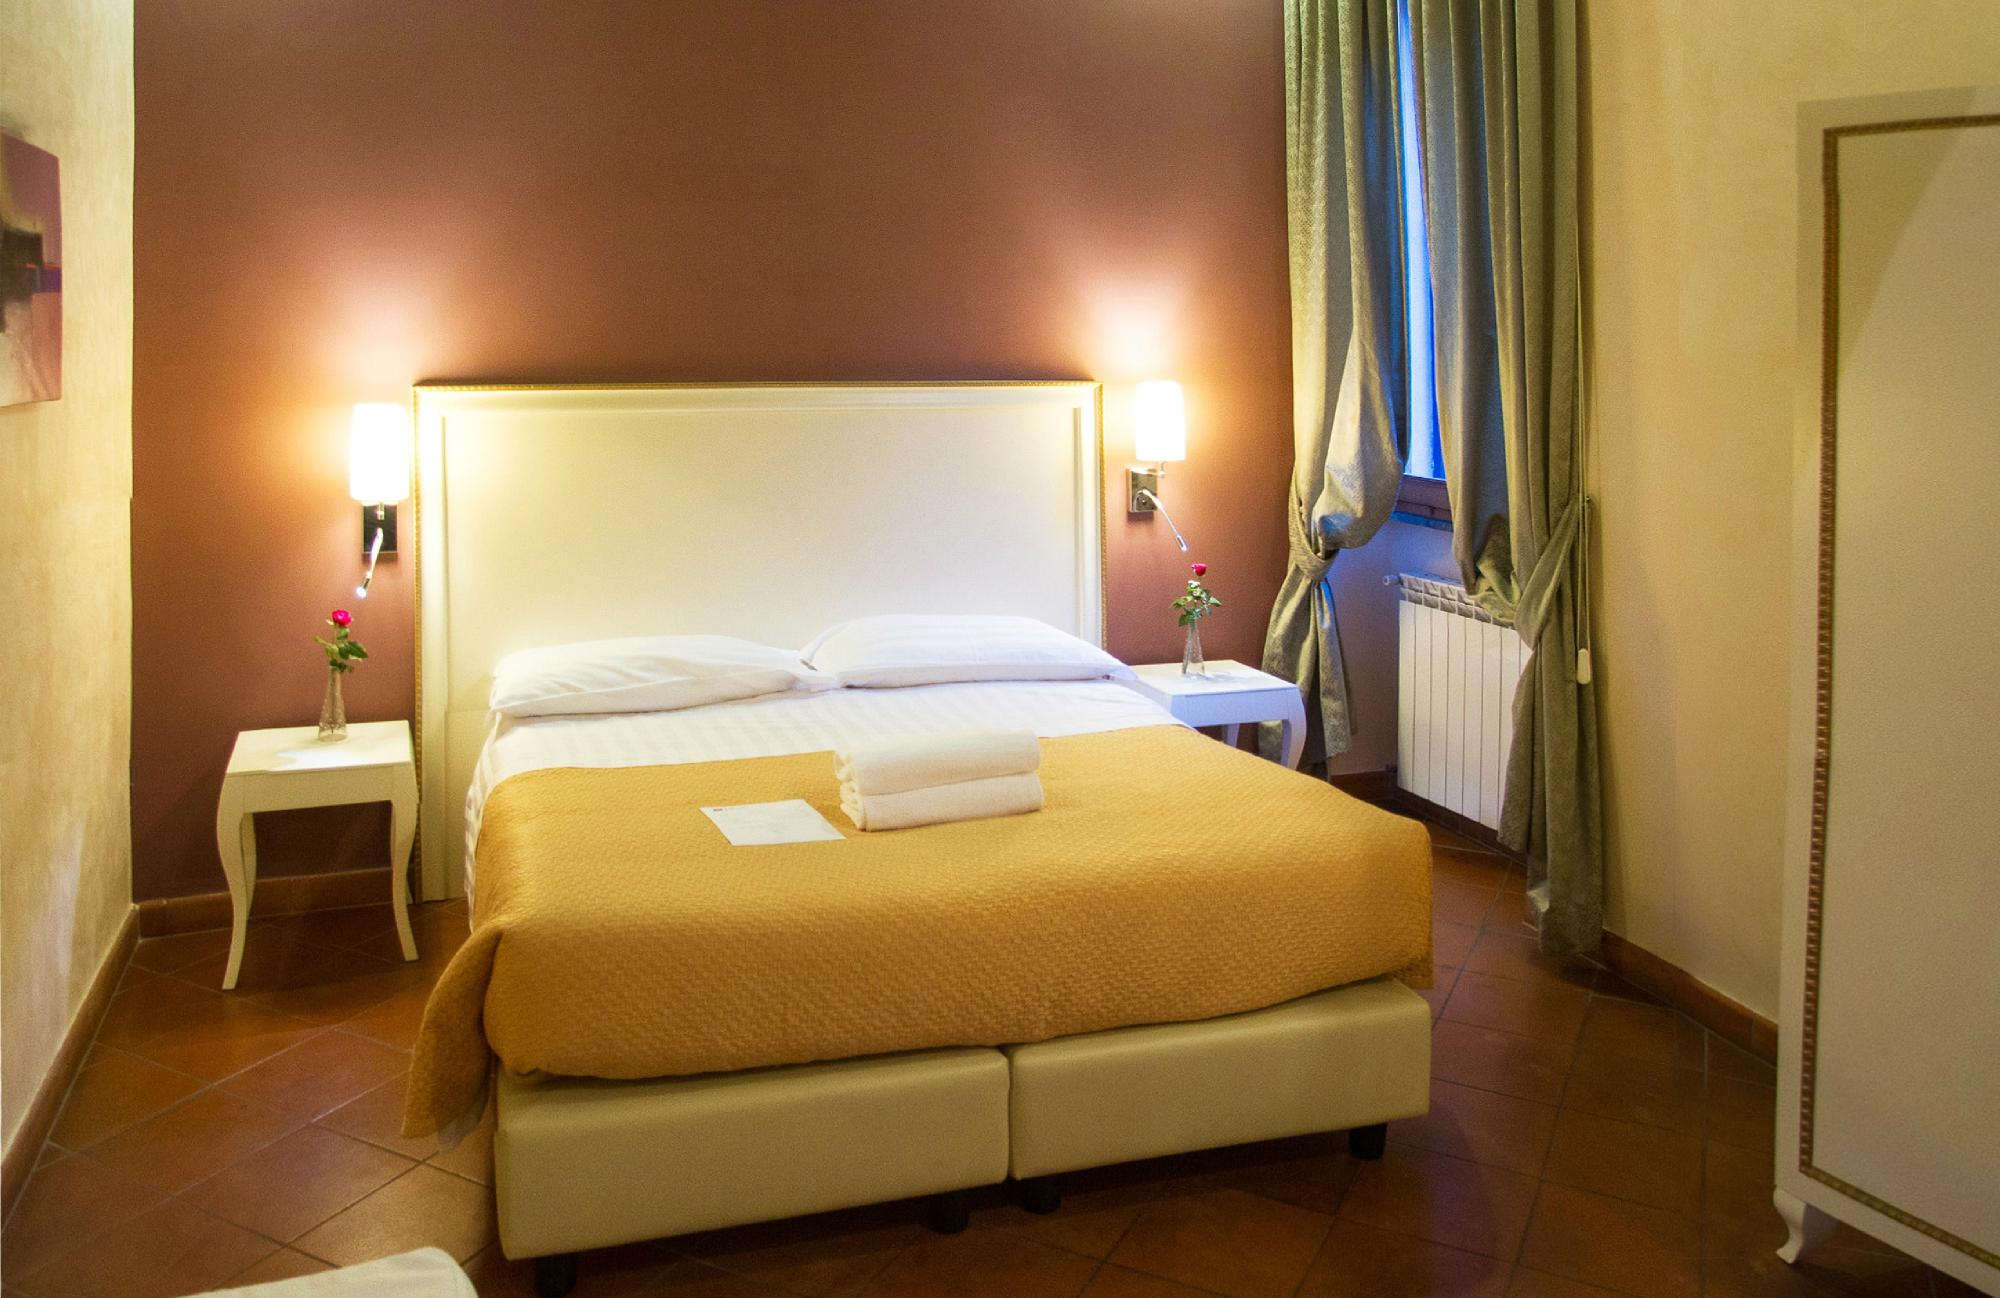 B&B In and Out Rome